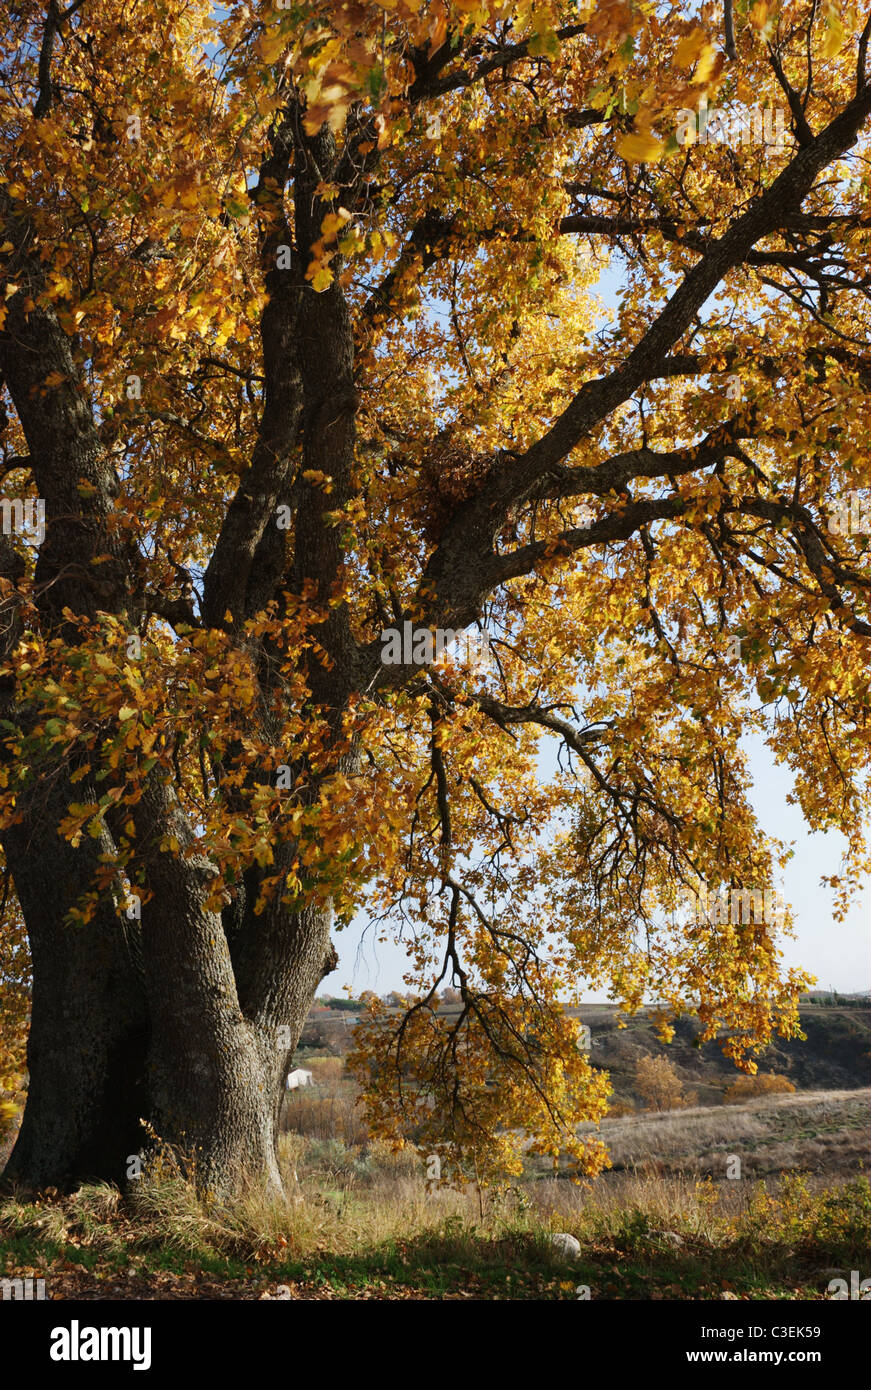 Golden branches of a secular oak tree in the autumn wind - Stock Image